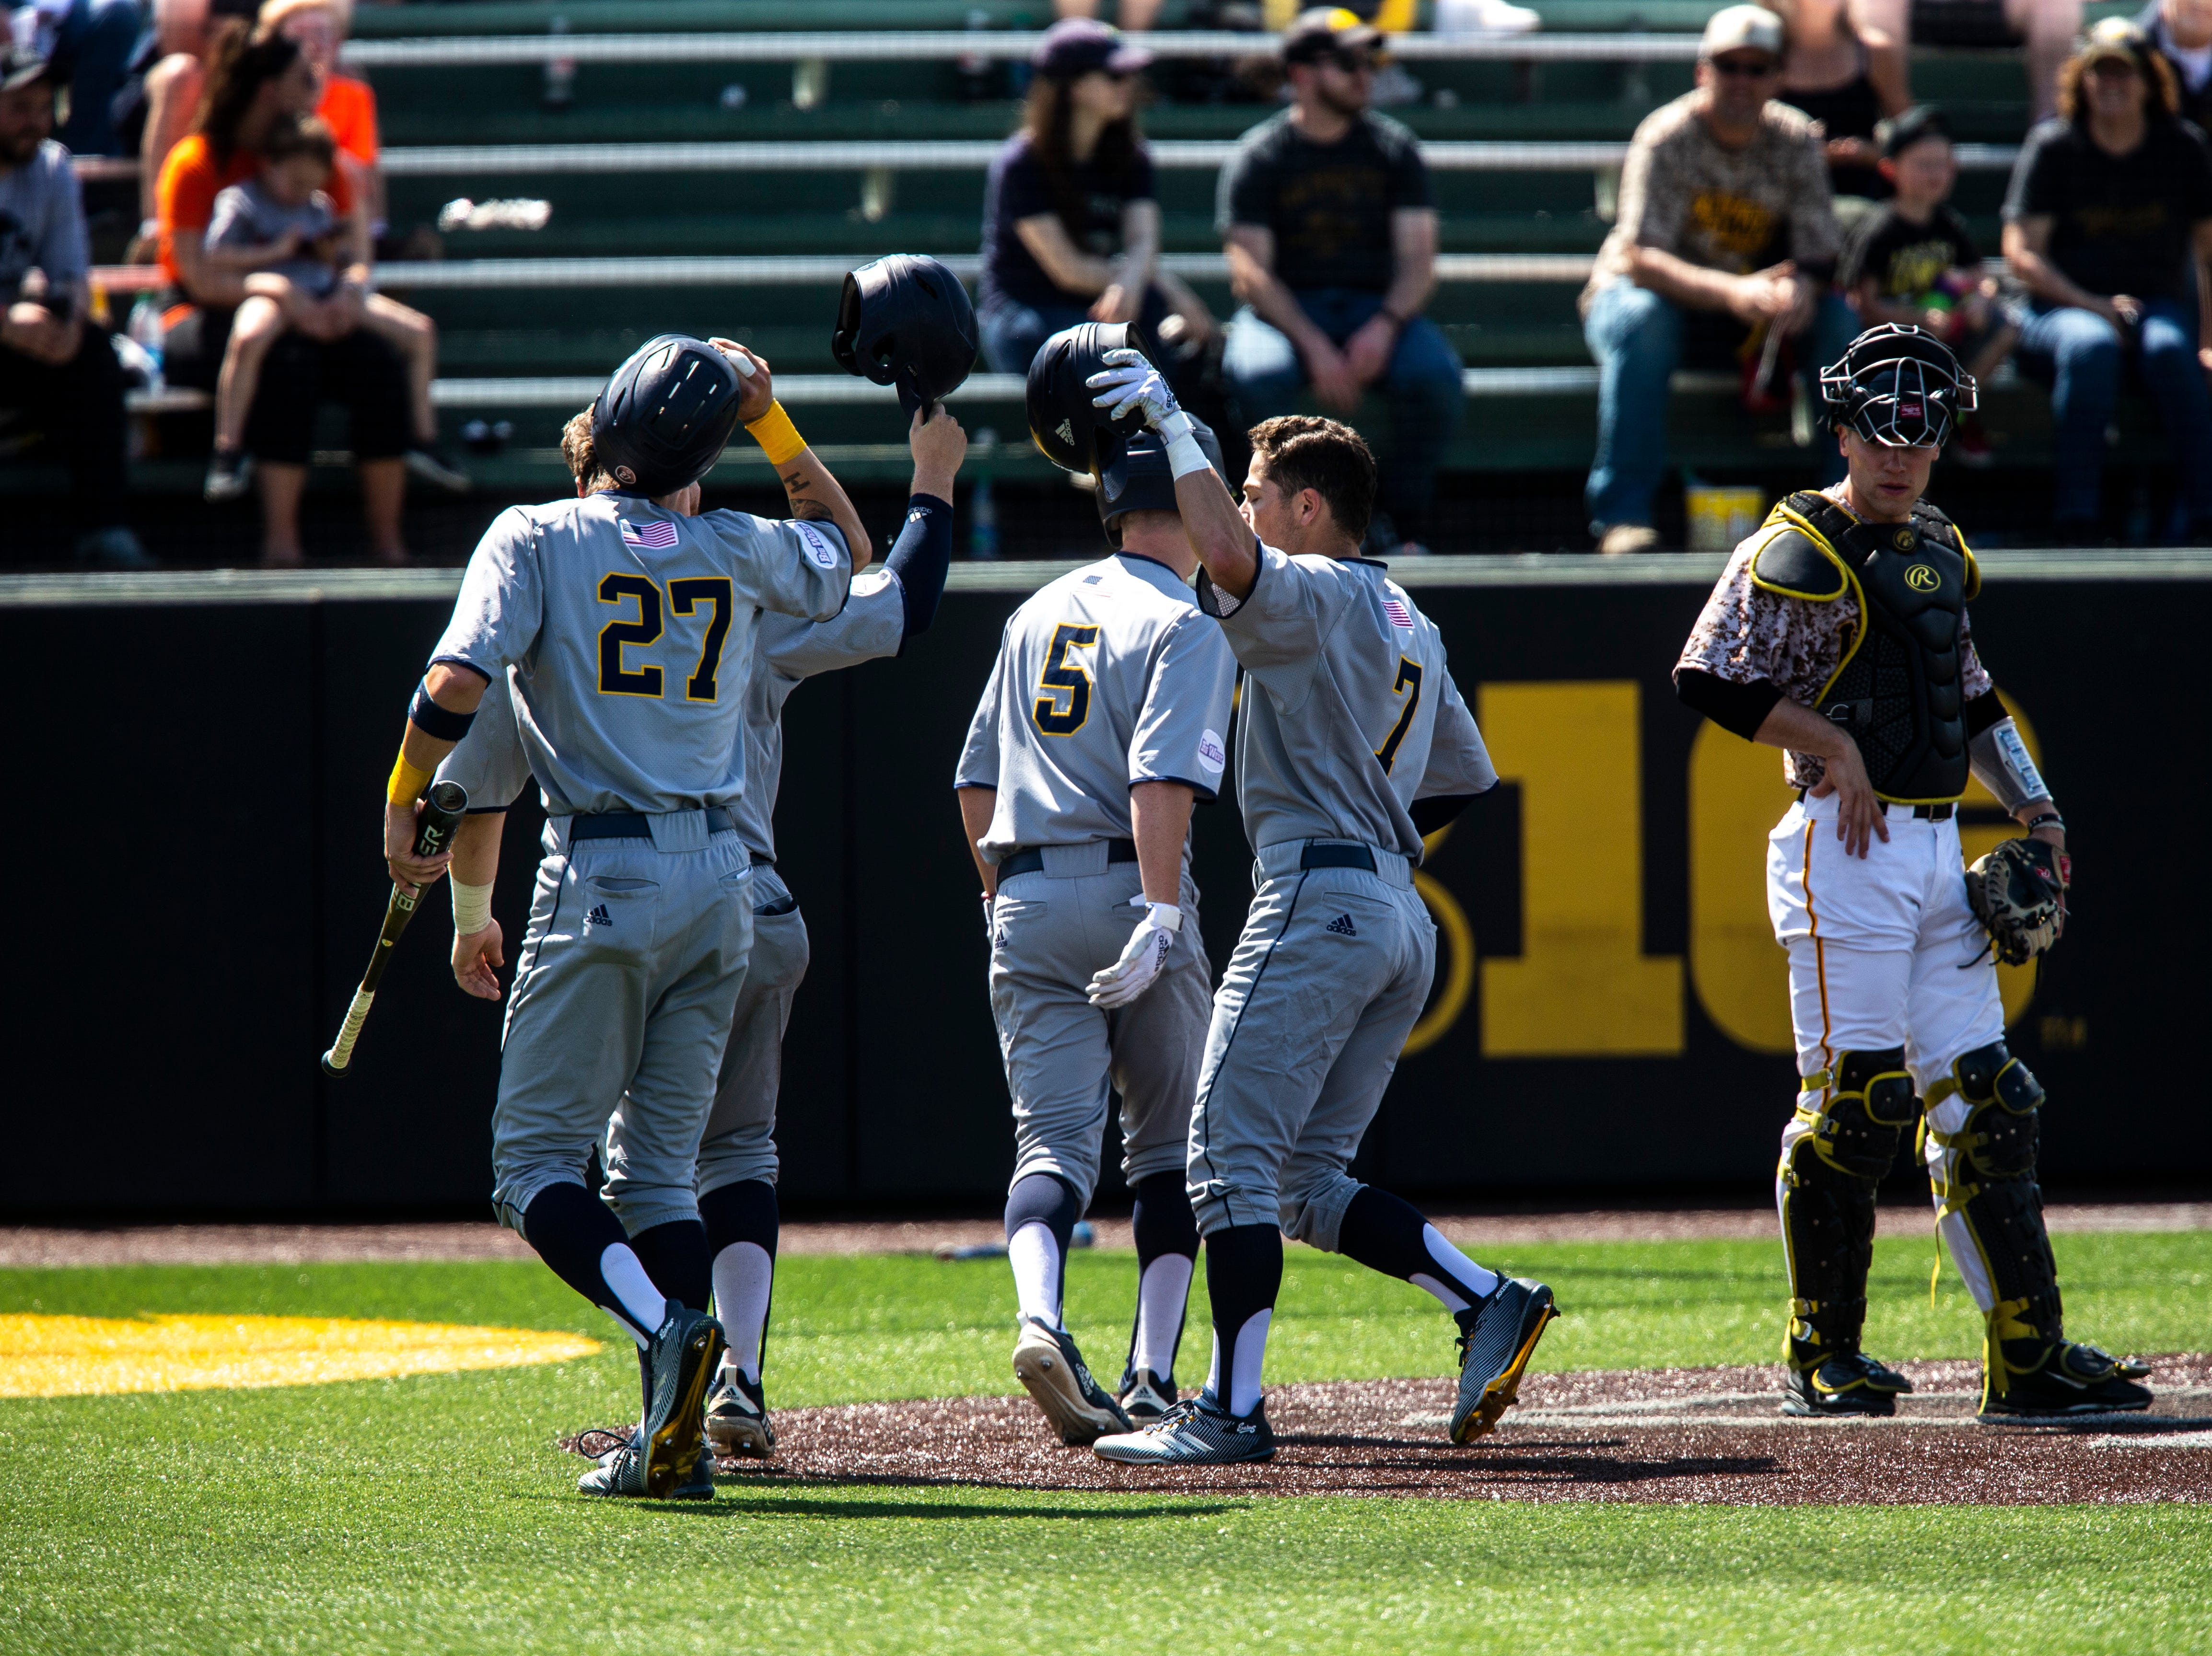 Iowa catcher Austin Martin, right, watches as University of California Irvine's Mikey Filia (7) celebrates with teammate Christian Koss (27) after scoring a run during a NCAA non conference baseball game, Sunday, May 5, 2019, at Duane Banks Field in Iowa City, Iowa.